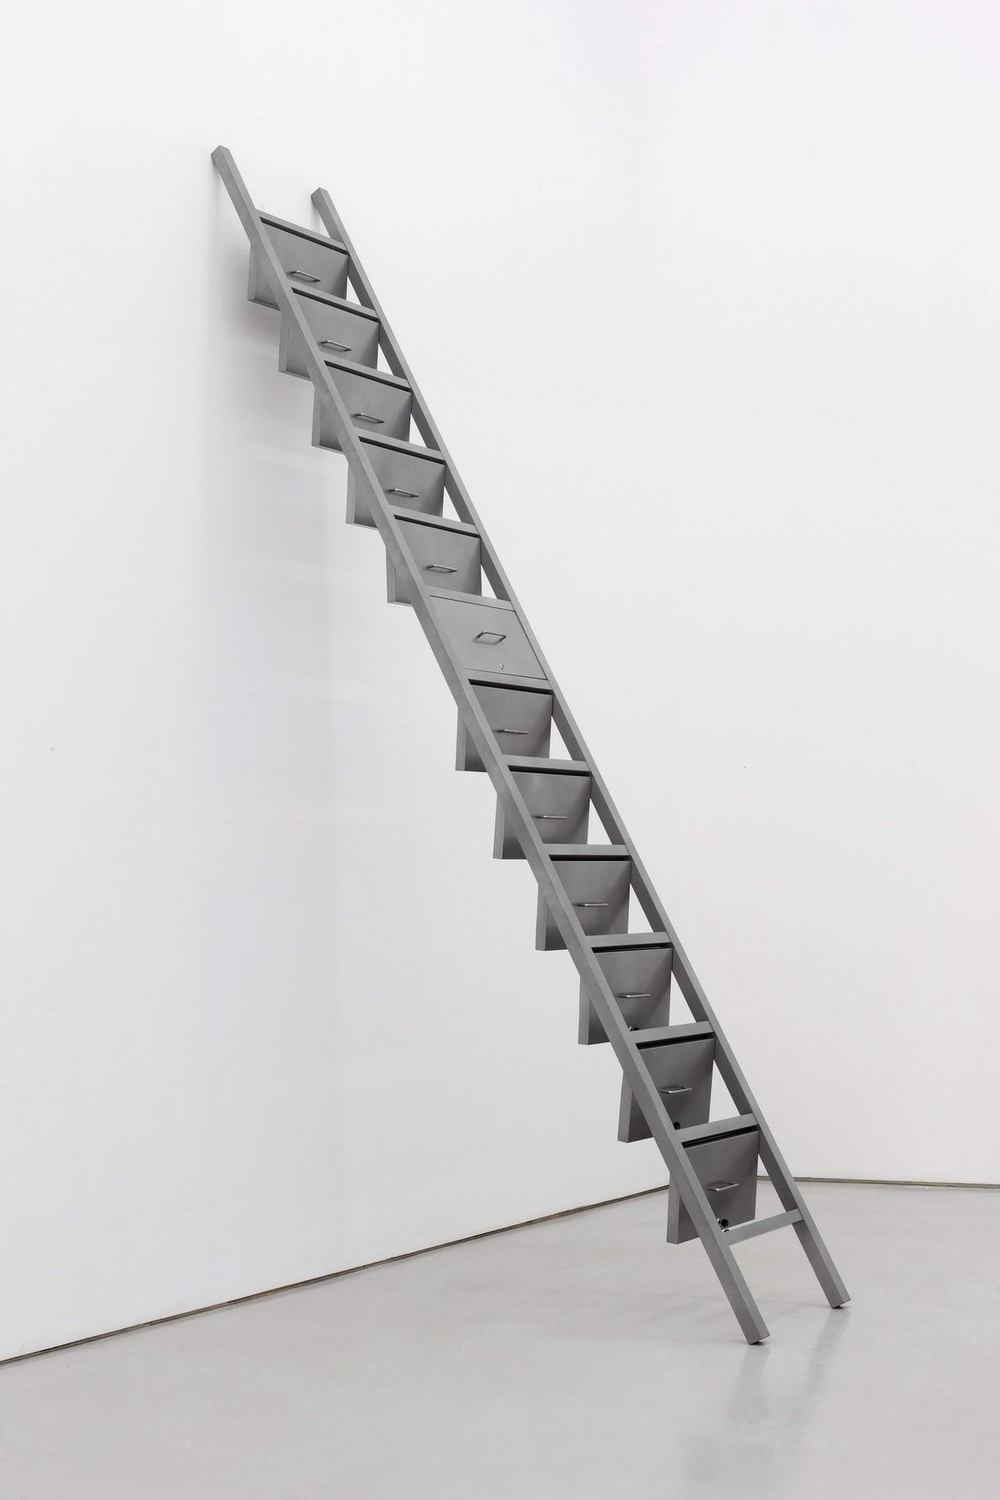 Gao Lei 高磊, A-712, 2013, Stainless steel and locks 不锈钢、锁芯, 60 x 21 x 472 cm